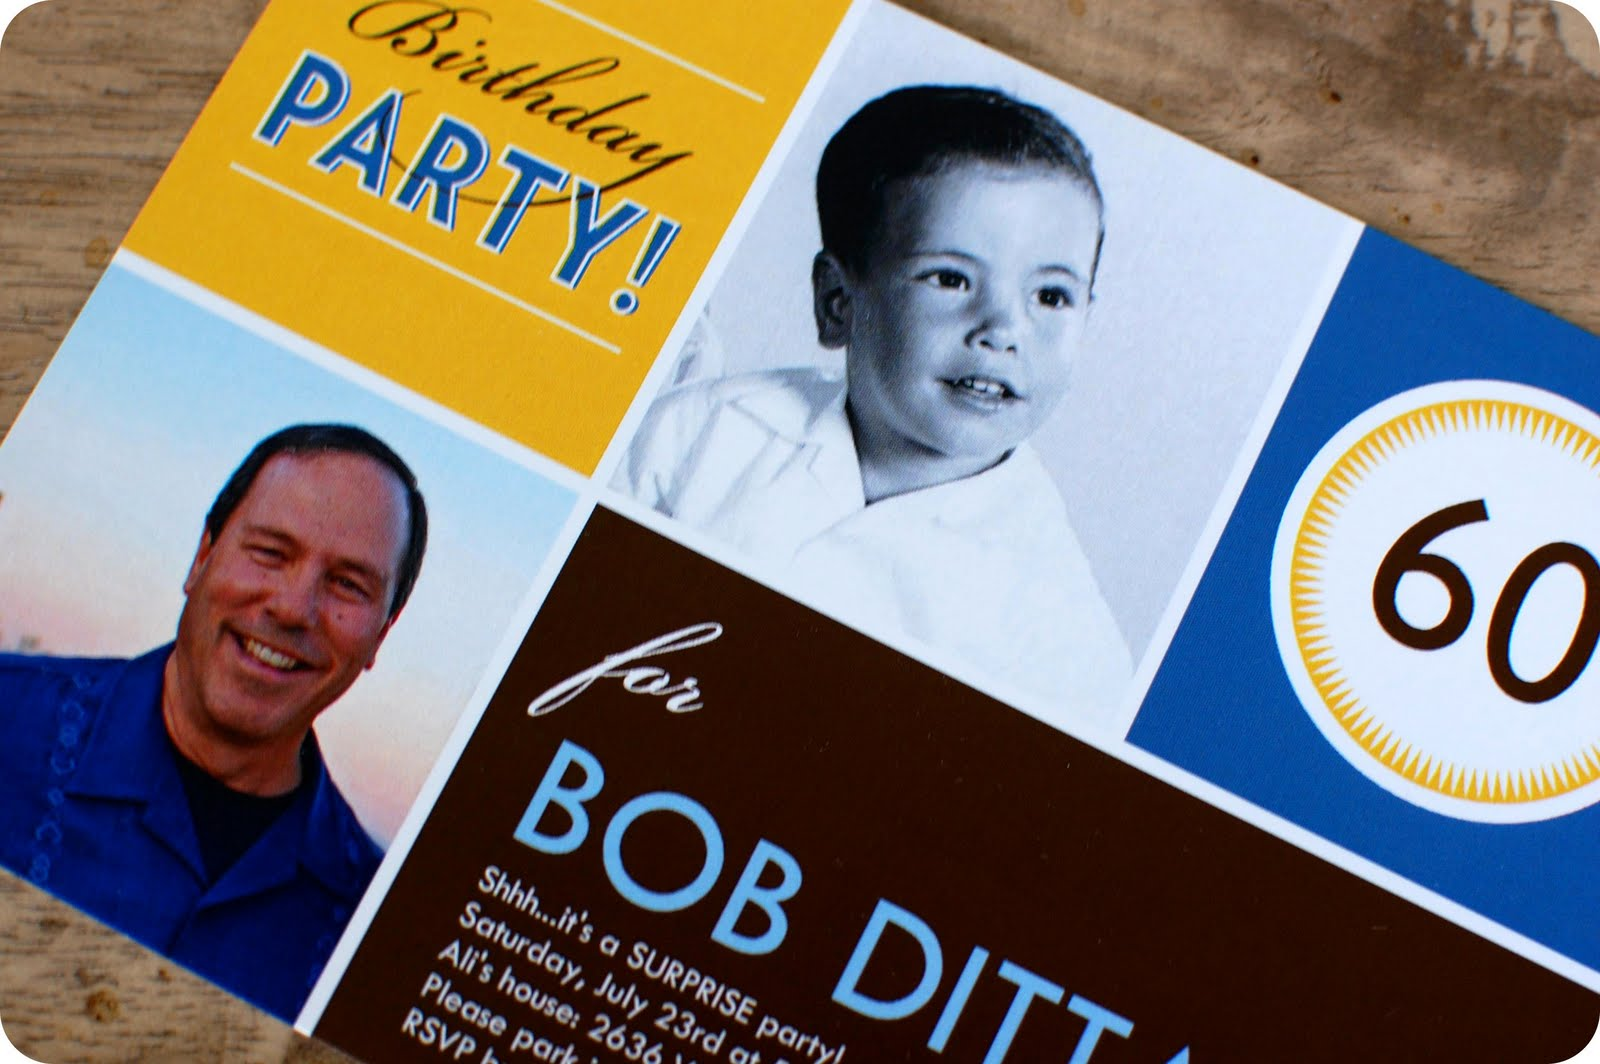 Dads 60th Surprise Party The Invitations